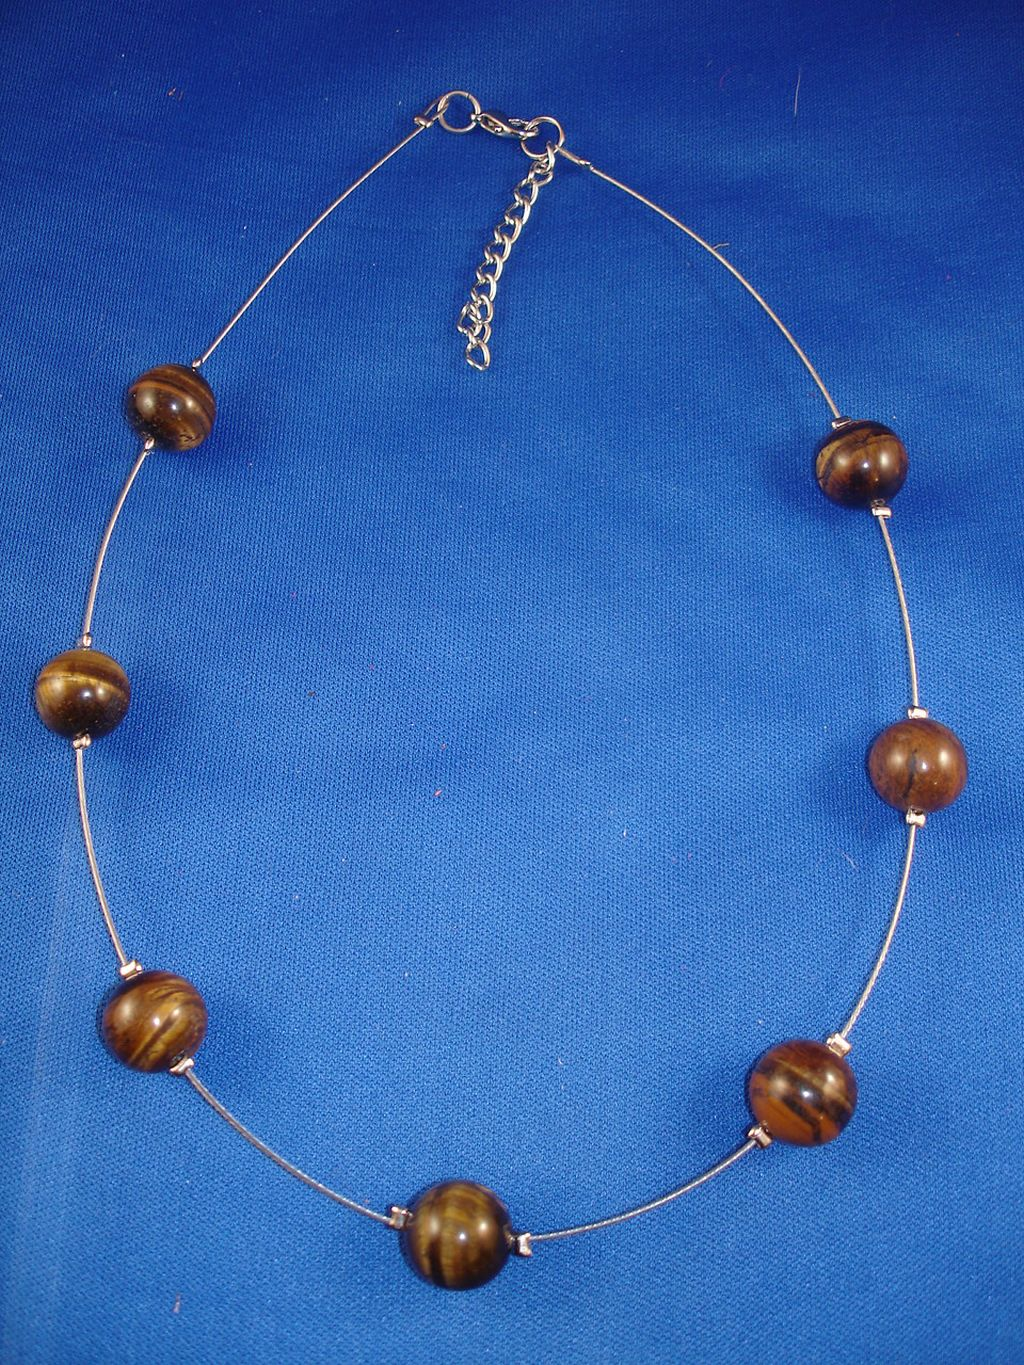 Tiger`s Eye Genuine Stones Ball Necklace, European Costume Jewelry